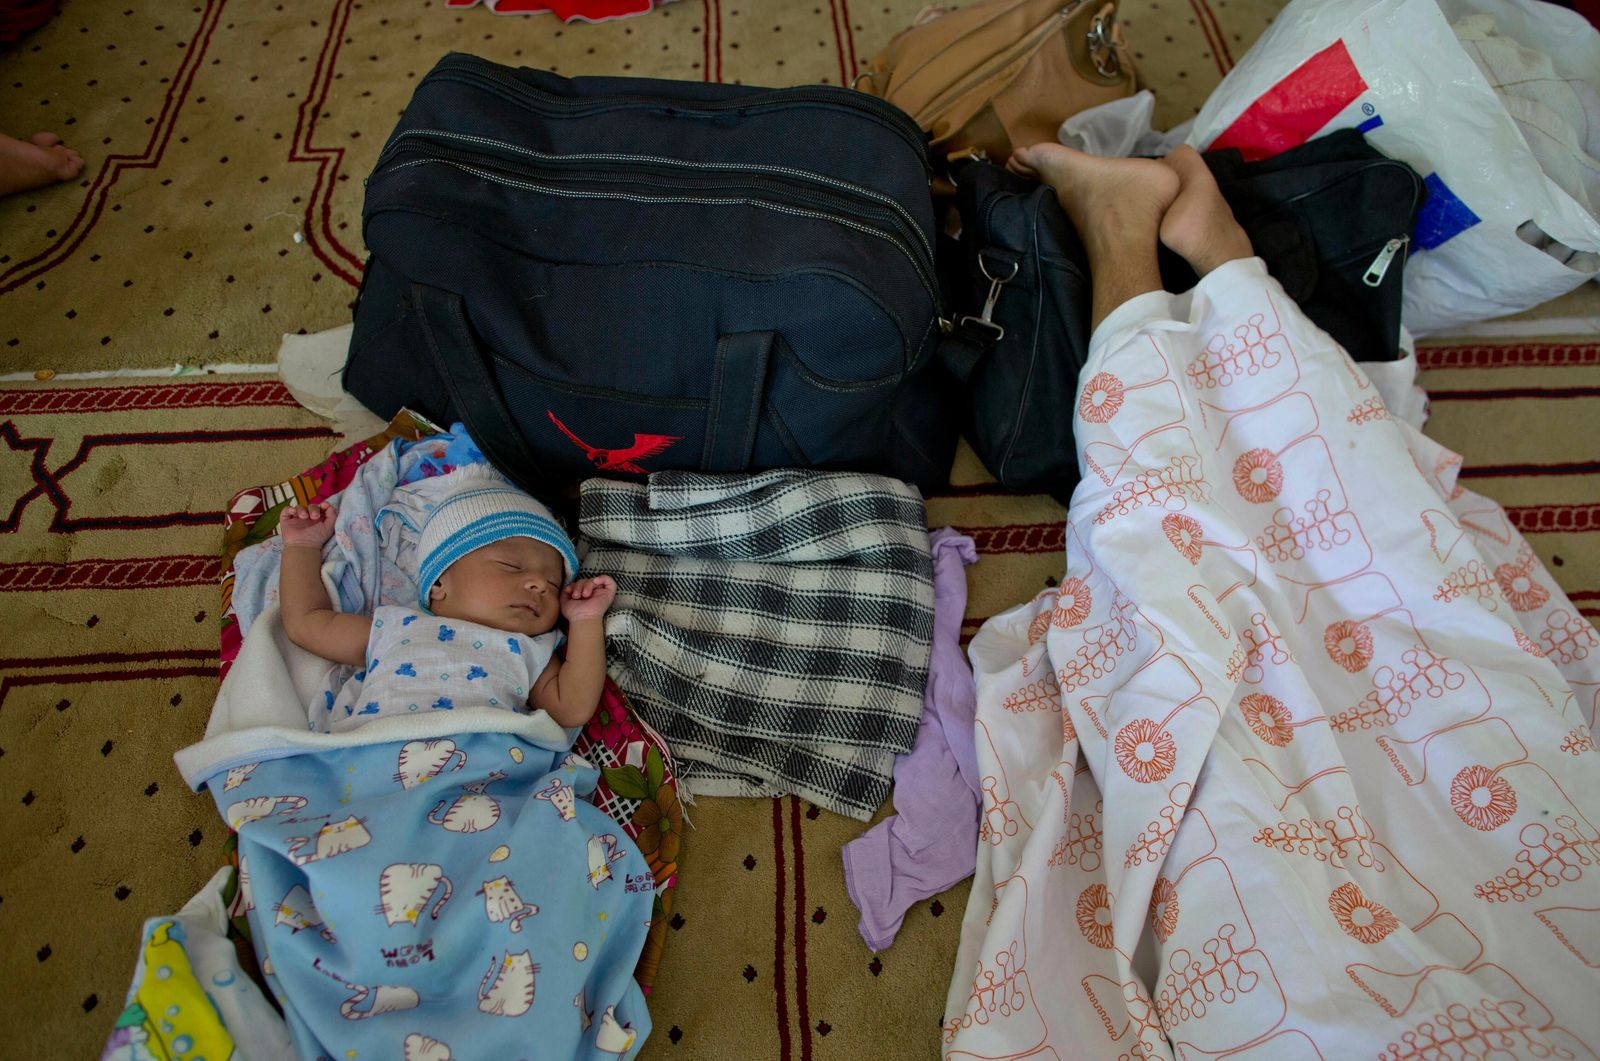 Ten-days old Amdad Ahamed, a son born to Ahmadi Muslim refugee family naps at a community center that they took refuge in Pasyala, north east of Colombo, Sri Lanka, Thursday, April 25, 2019. (AP Photo/Gemunu Amarasinghe)